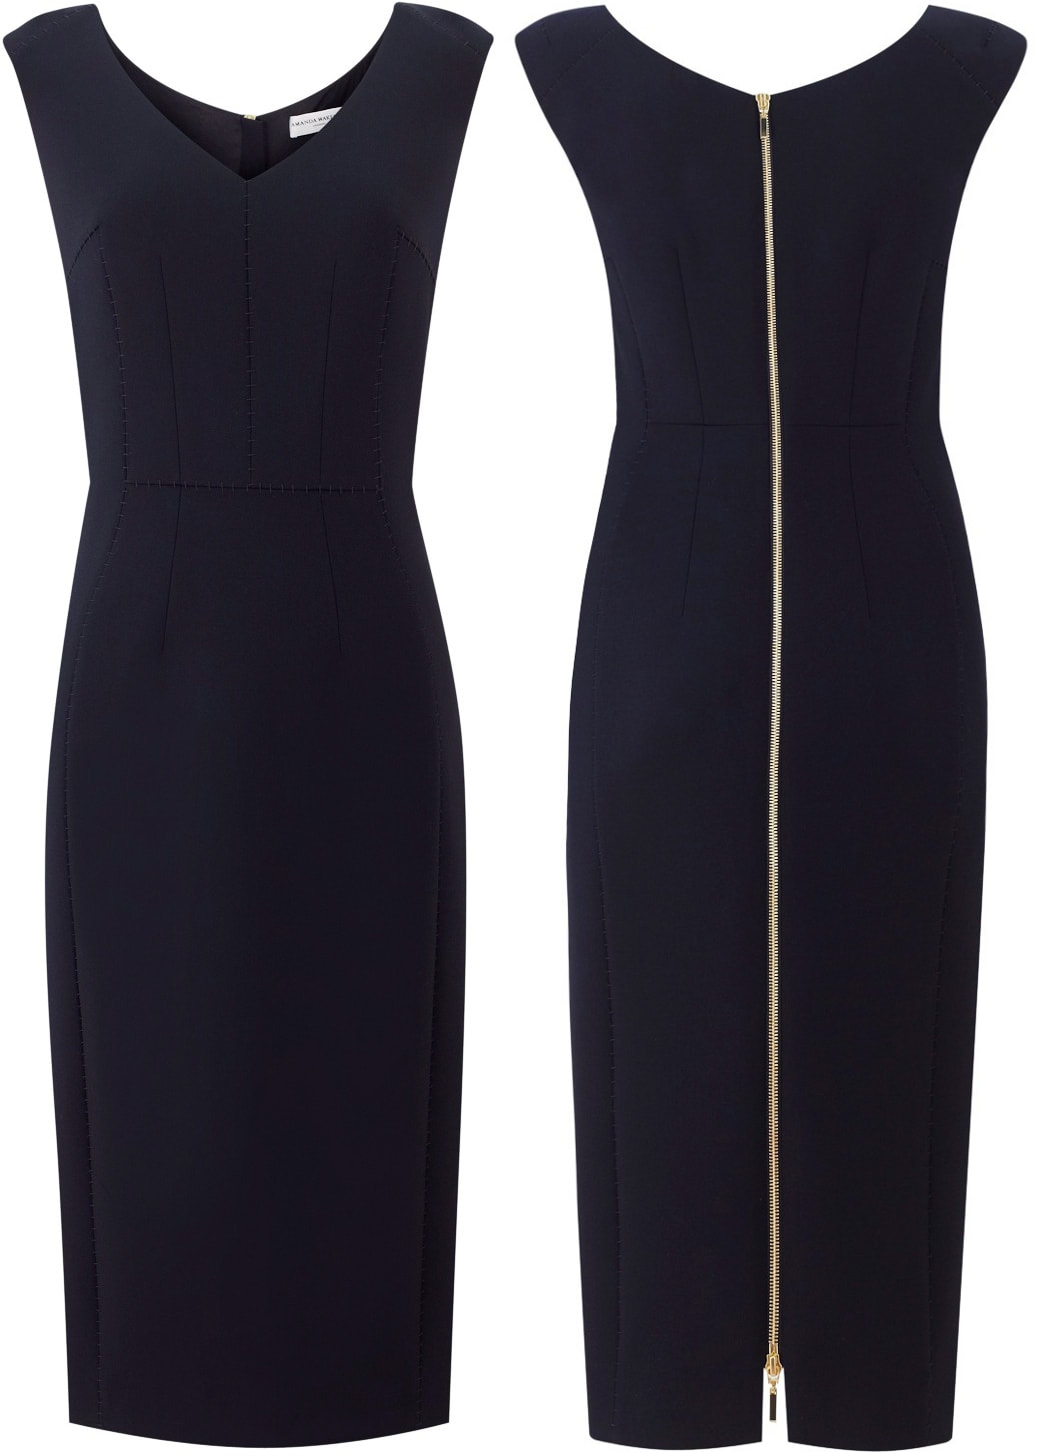 Amanda Wakeley Springsteen Midnight Blue Tailored Midi Dress aso Meghan Markle